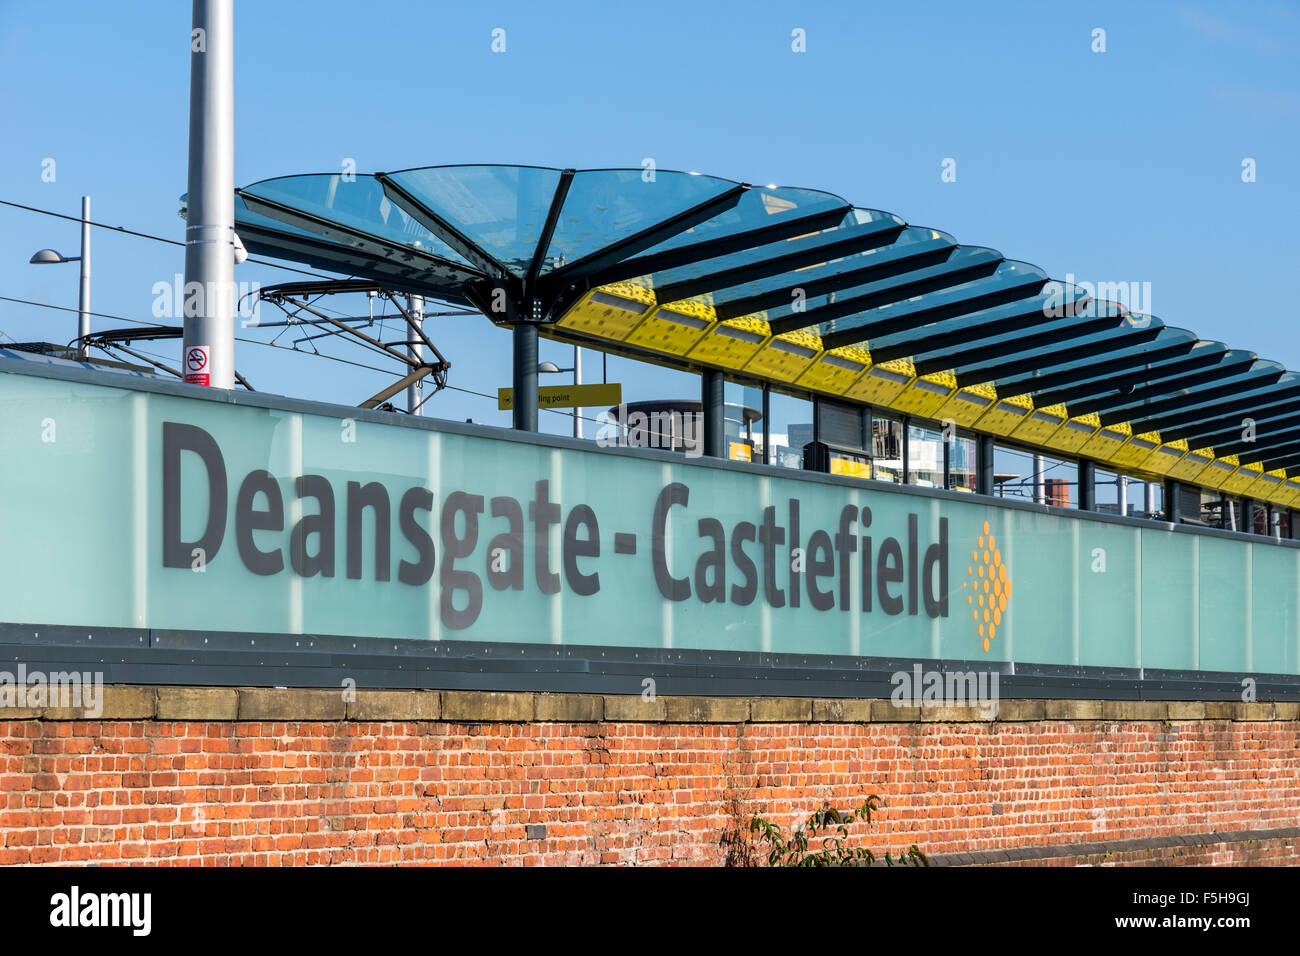 Glass wall and platform canopy at the Deansgate-Castlefield tram stop, Manchester, England, UK - Stock Image